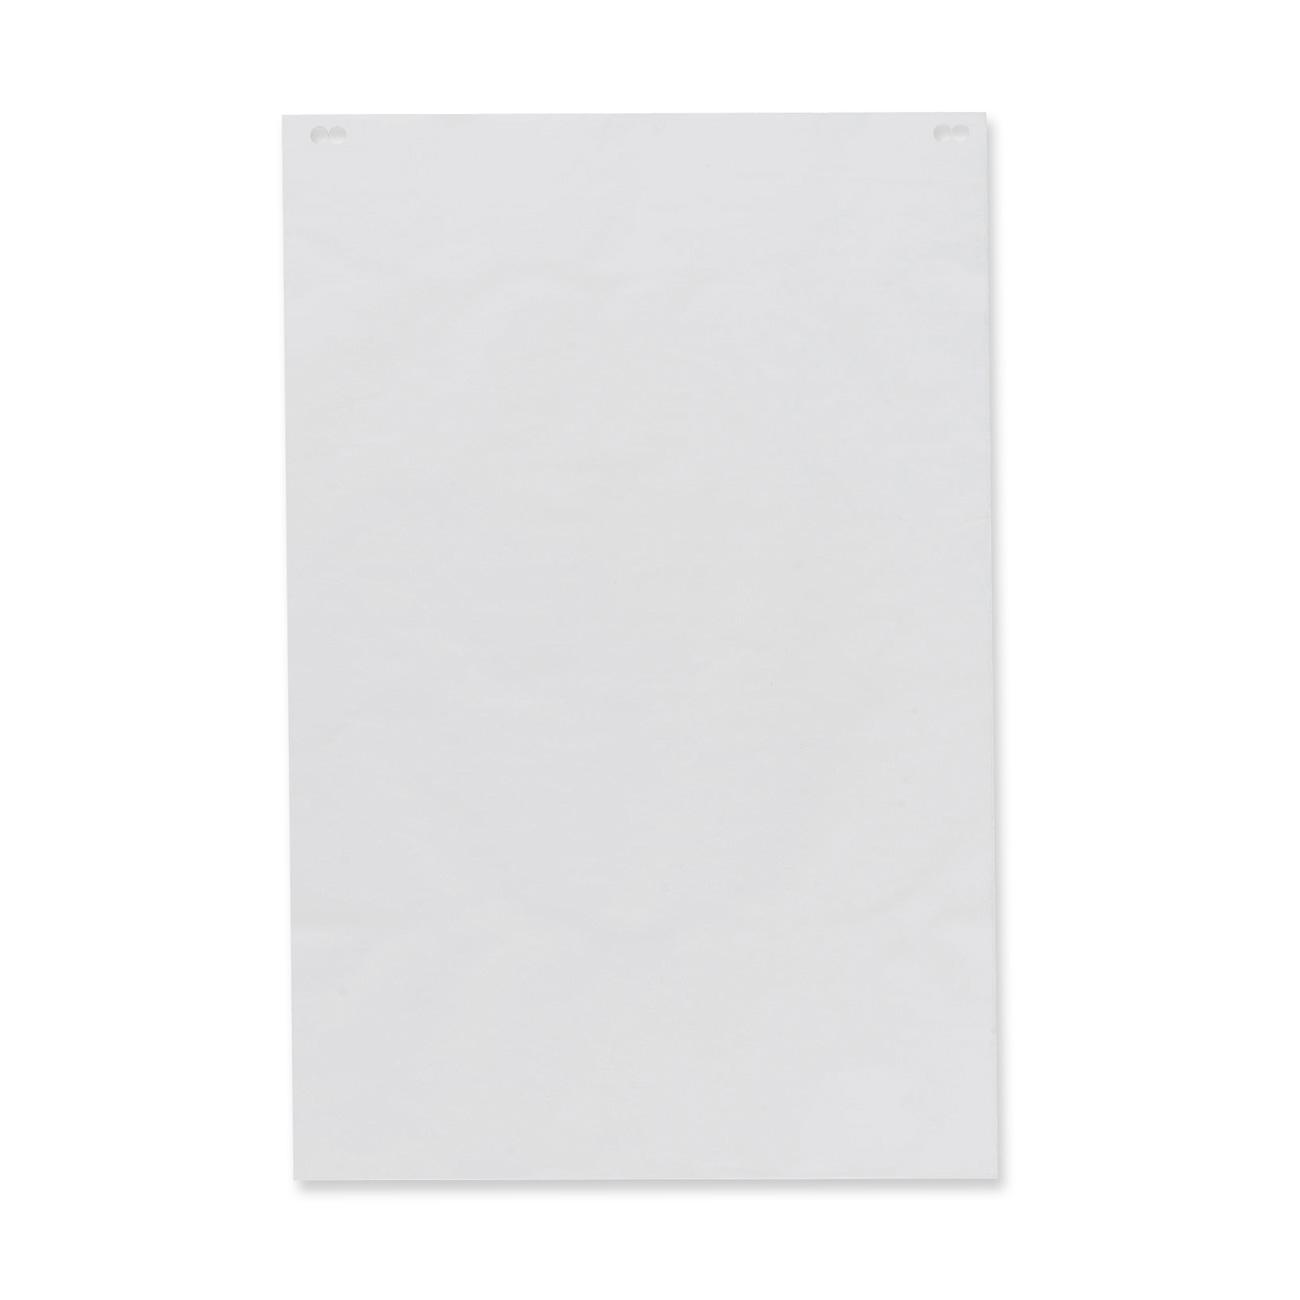 "Quartet Newsprint Flip Chart Easel Pad 24"" x 36"" White - 50 Sheets"